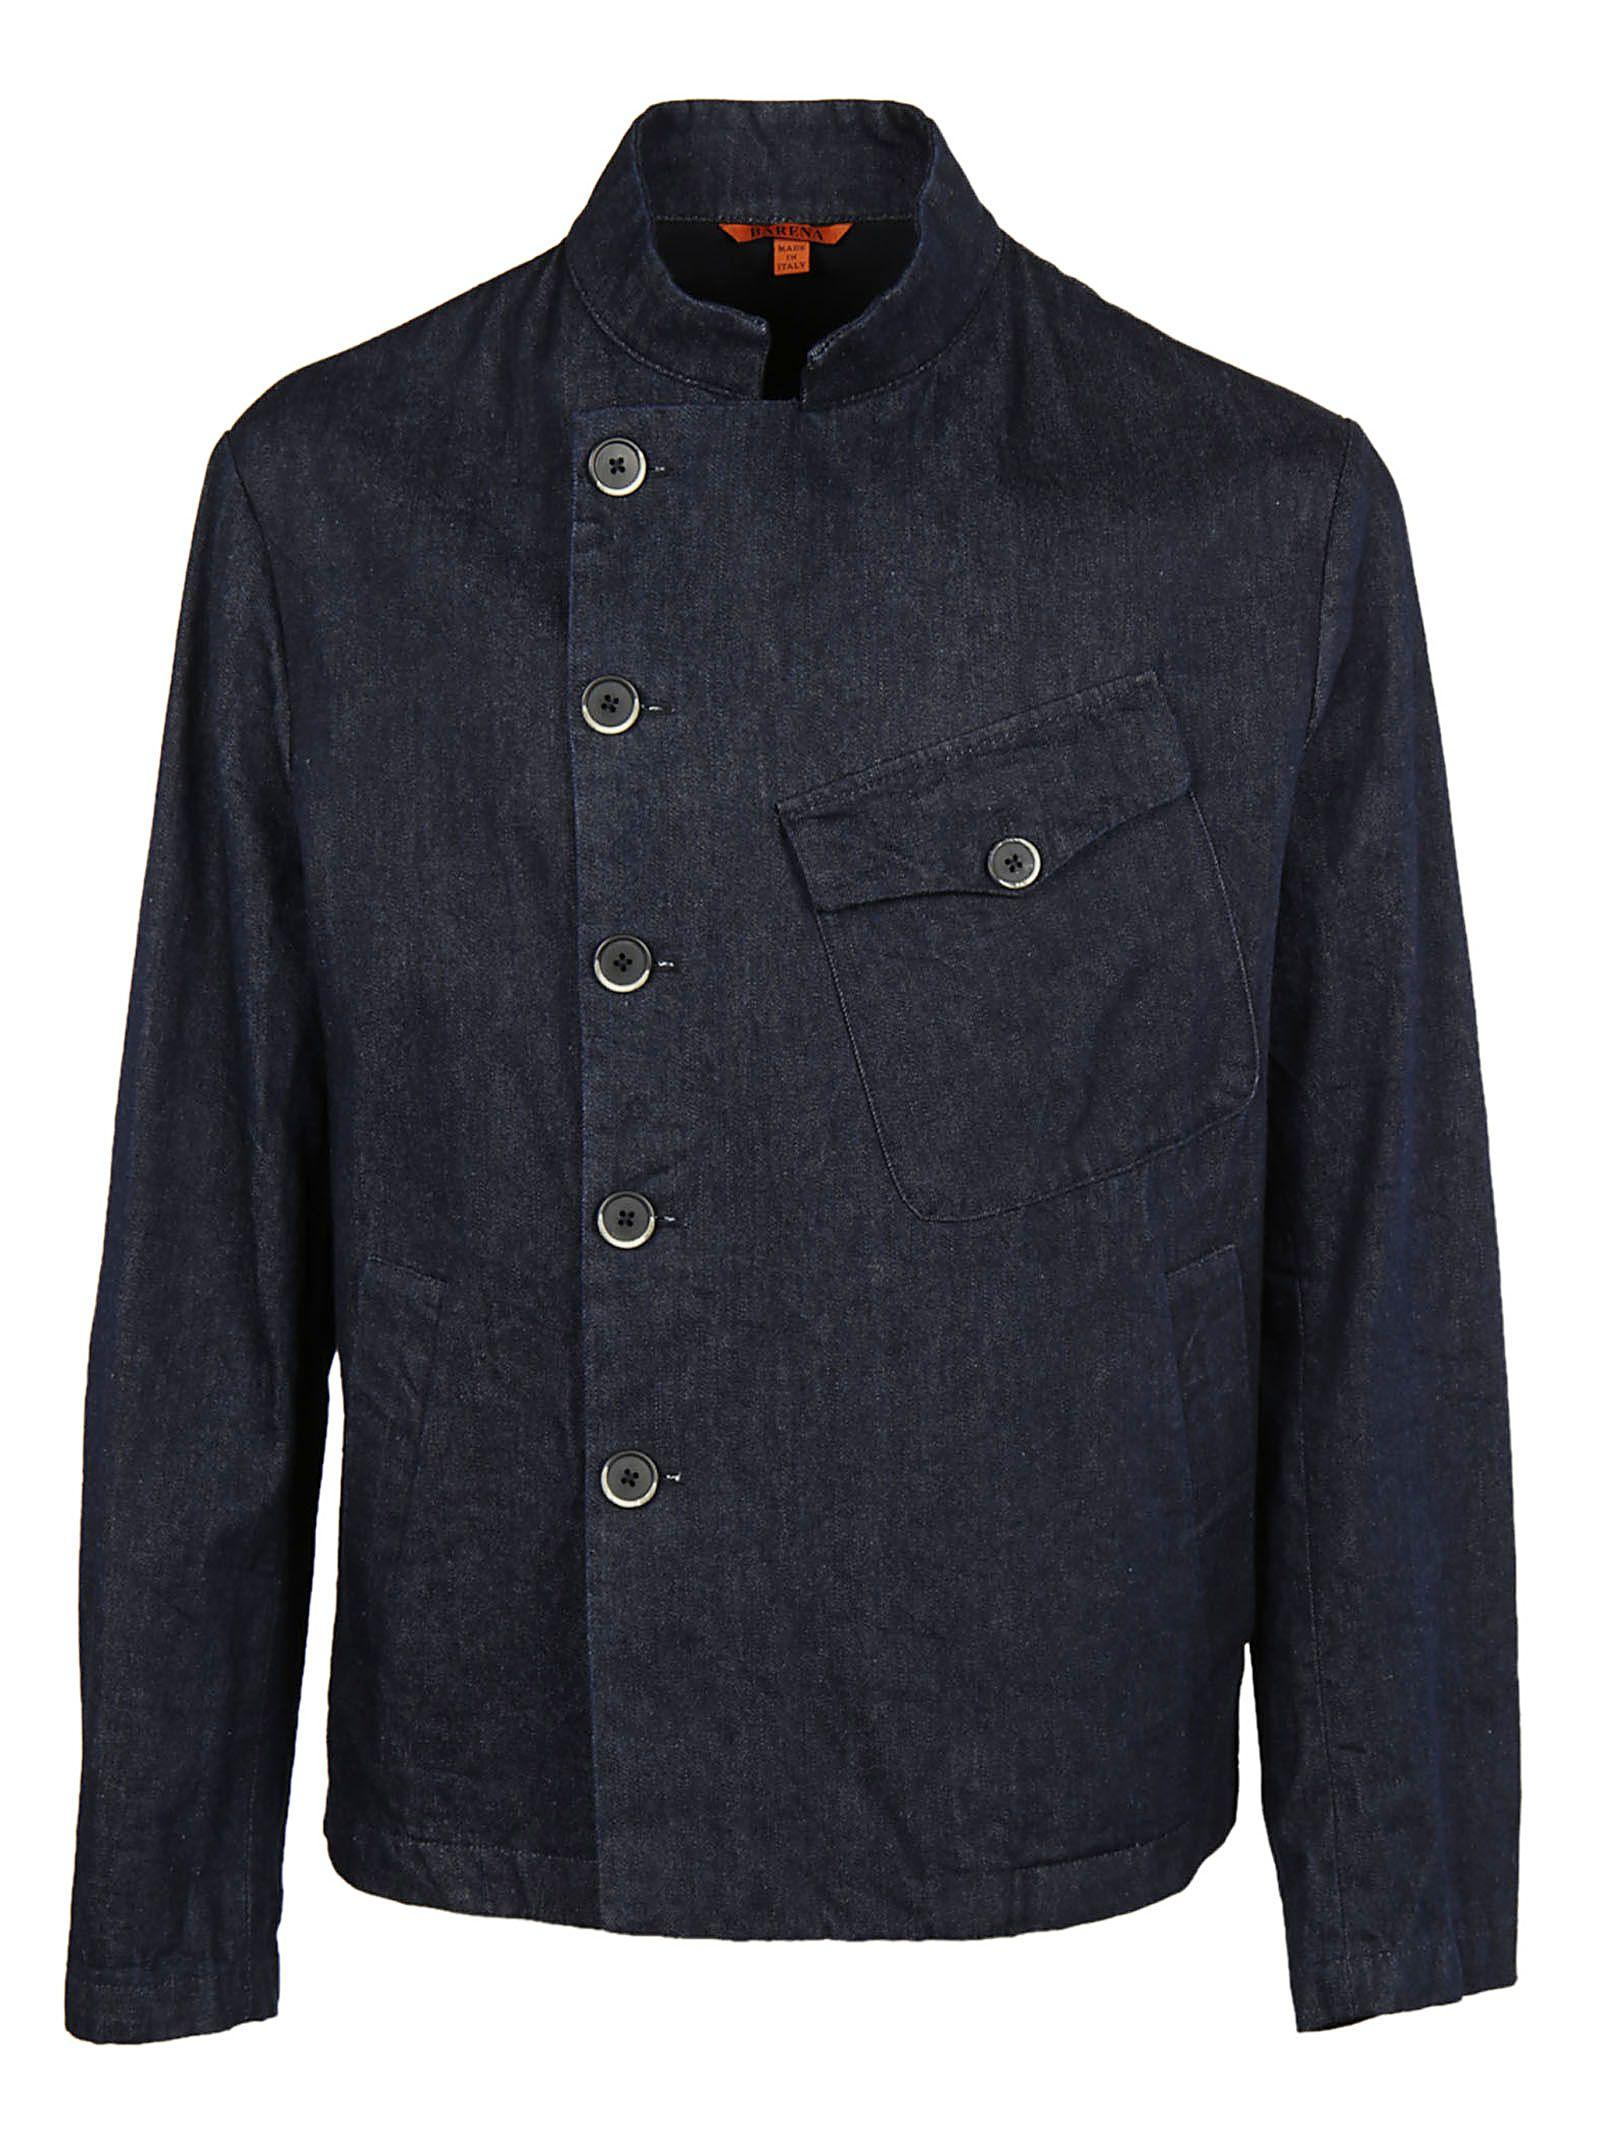 Barena Venezia Dislocated Fastening Denim Jacket In Dark Grey